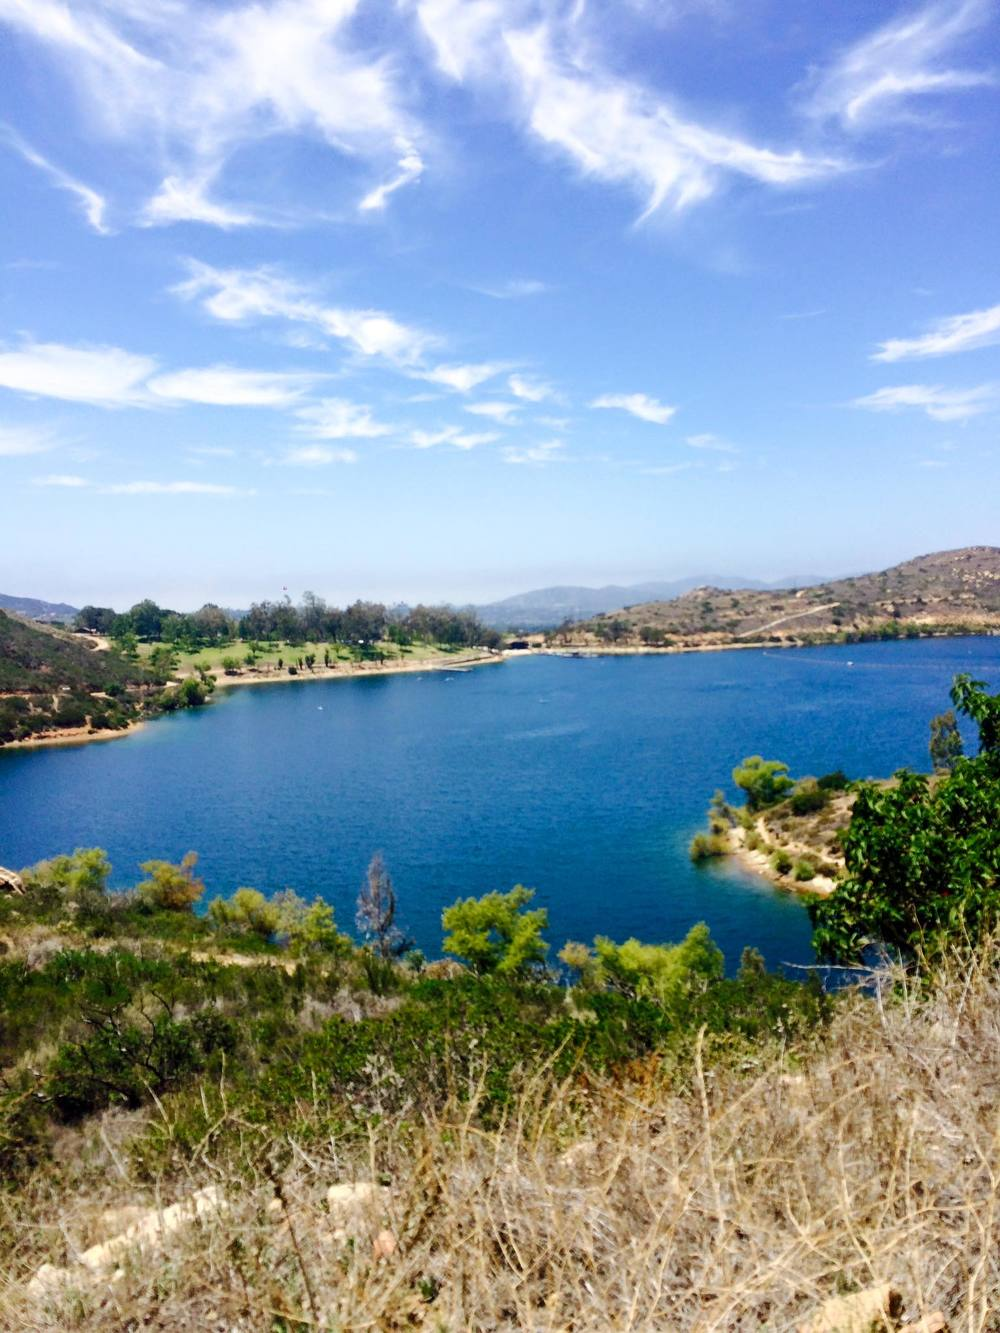 Lake at Mt. Woodson